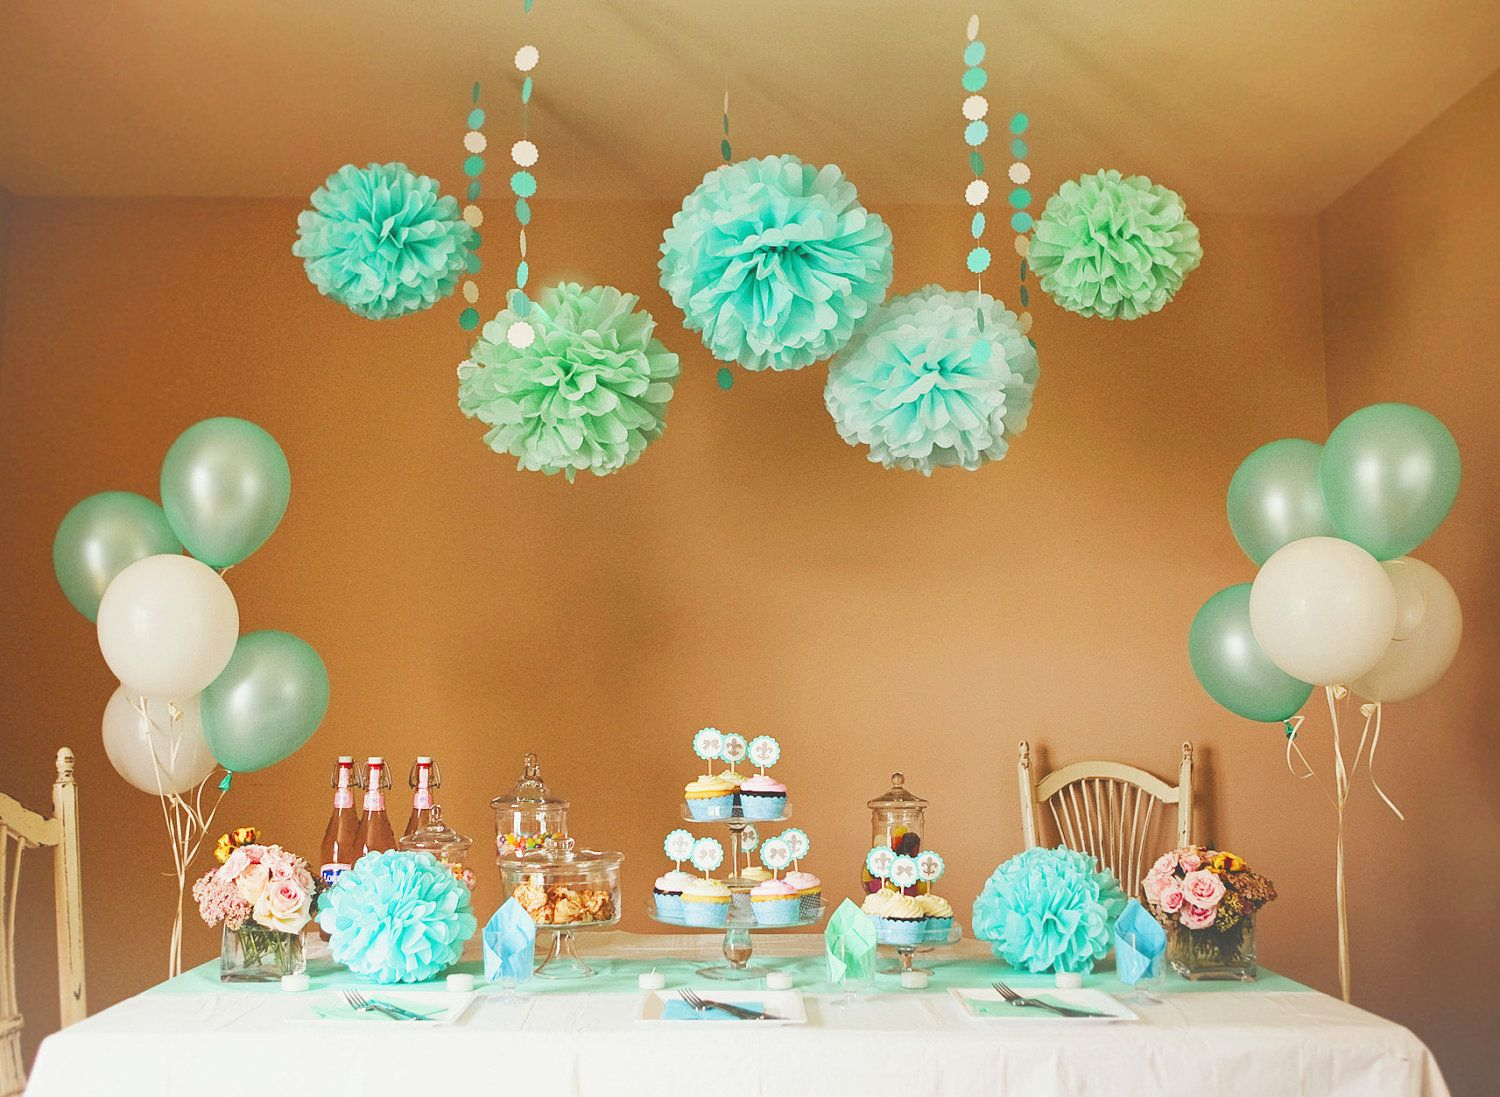 Blue Party Decorating Ideas tiffany wedding centerpieces images - wedding decoration ideas